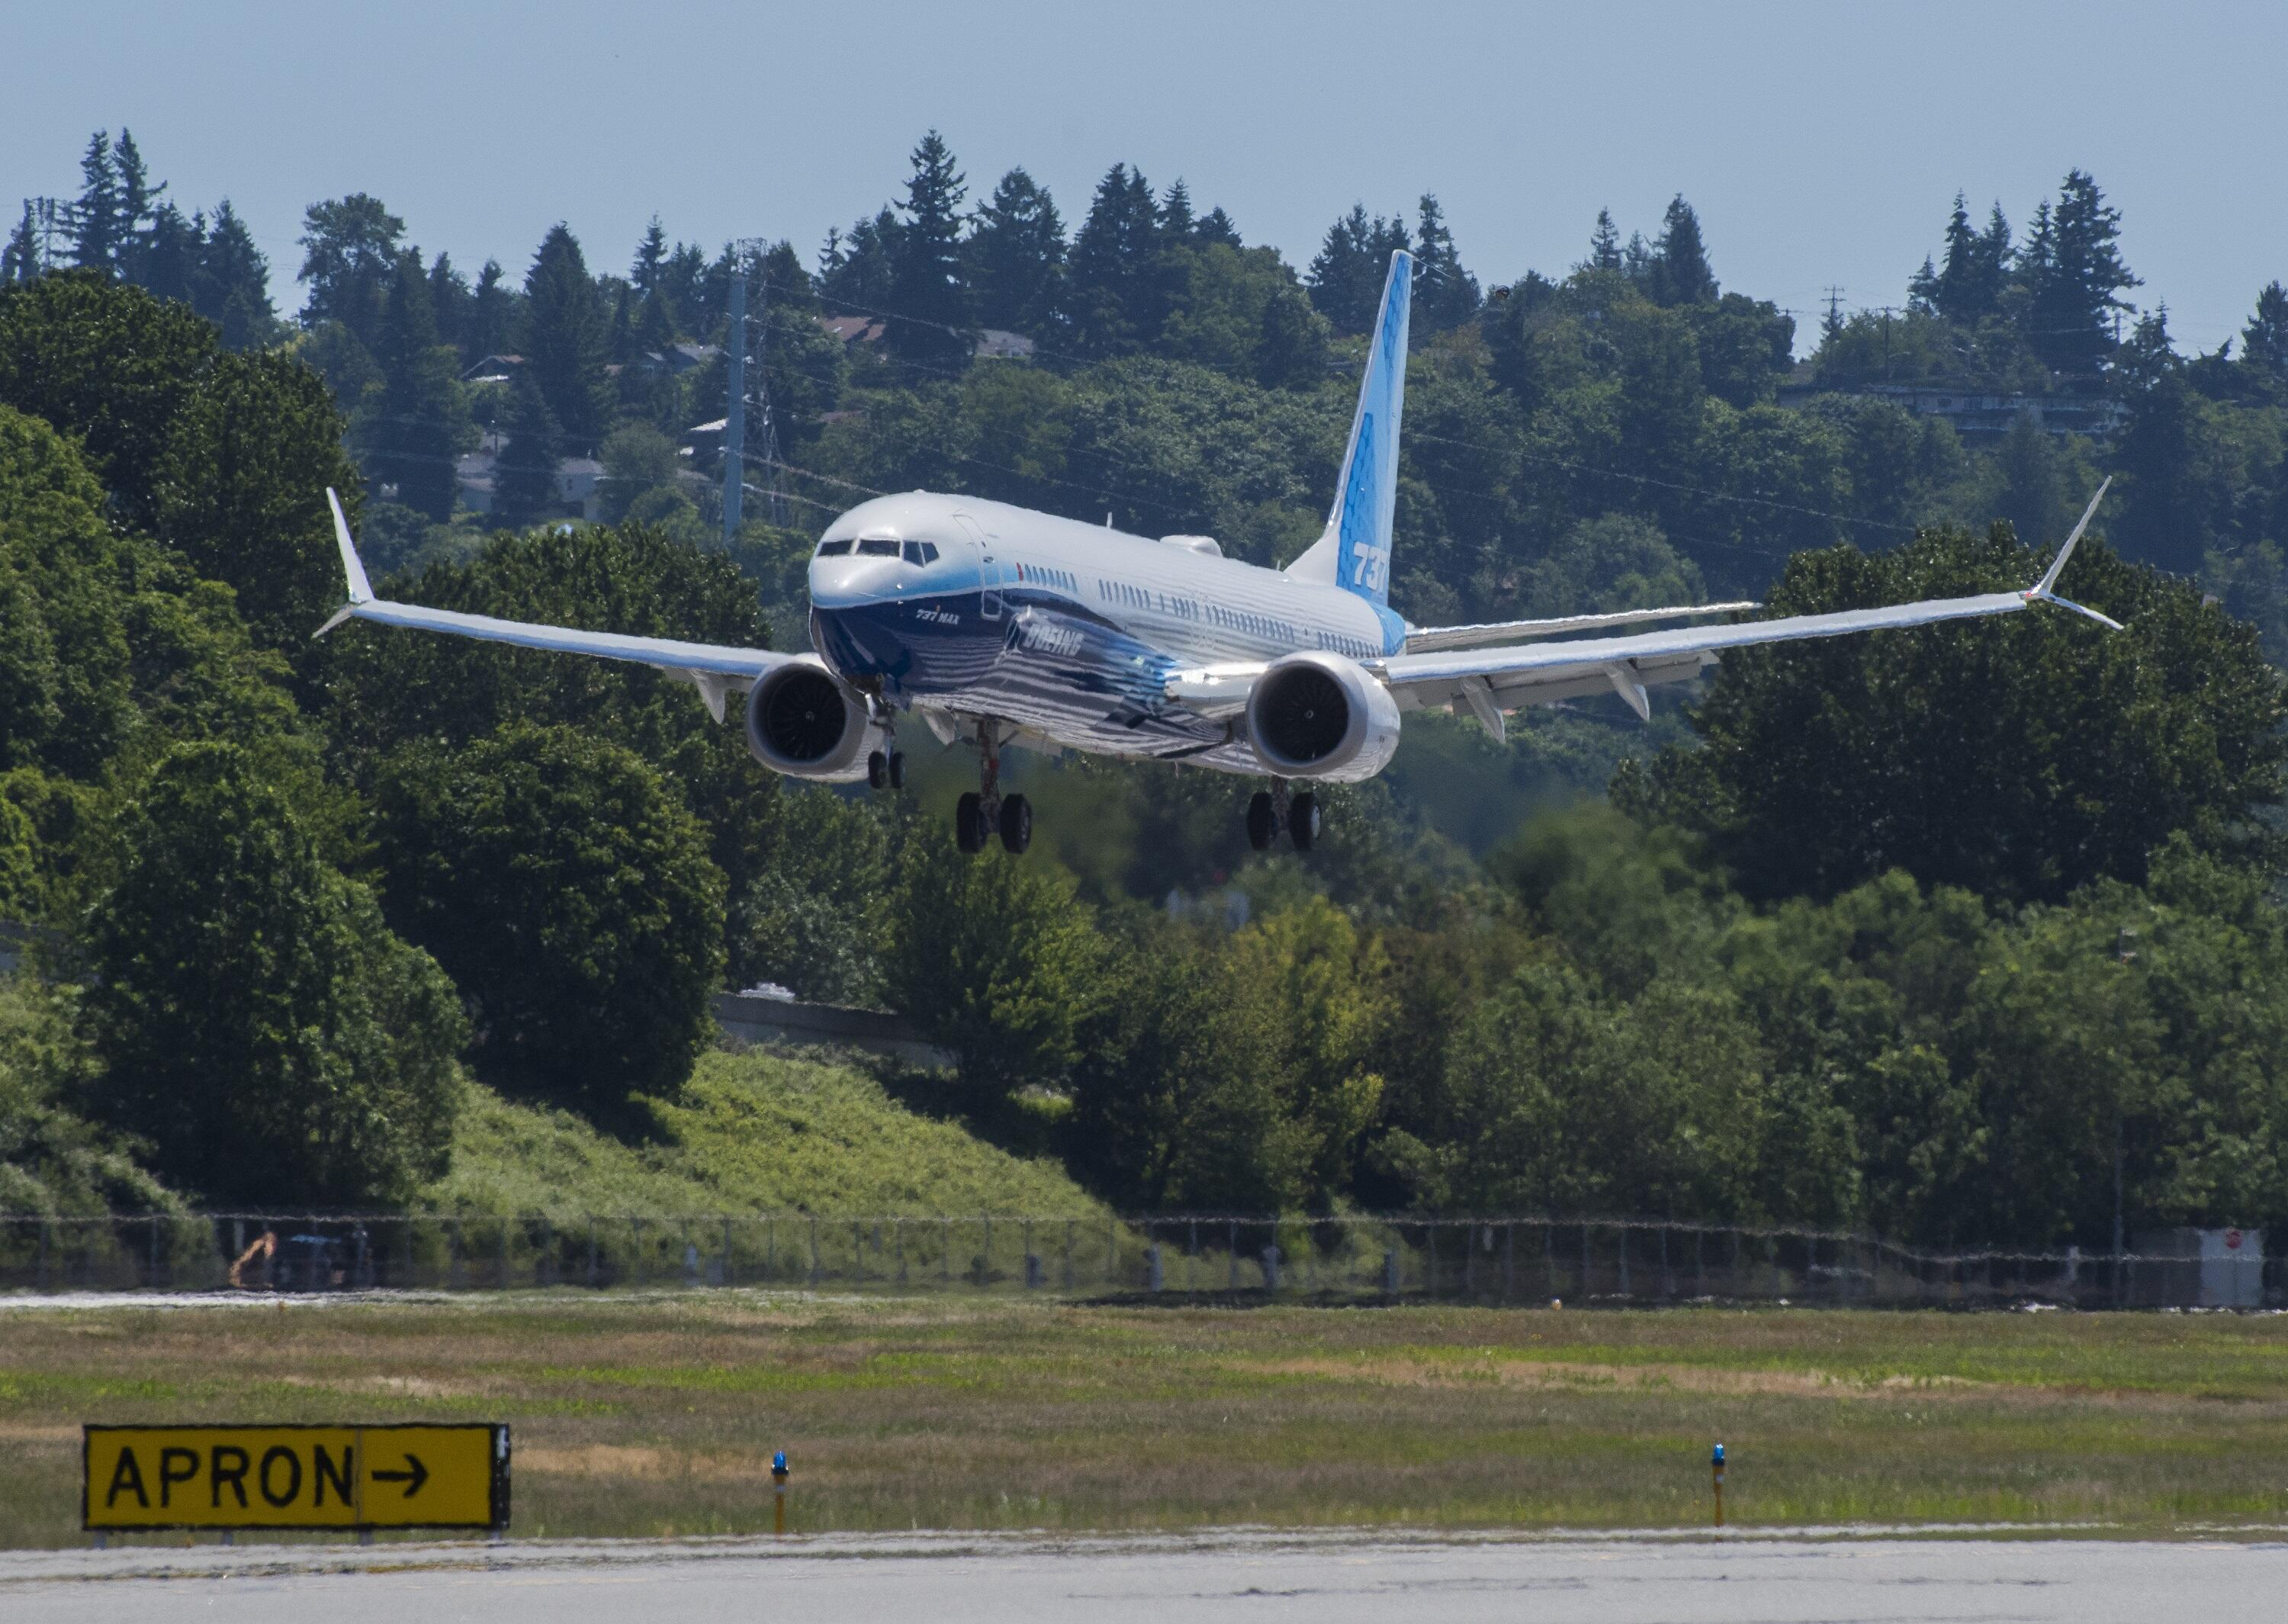 <p>The Max 10 just before landing at Boeing Field.</p>